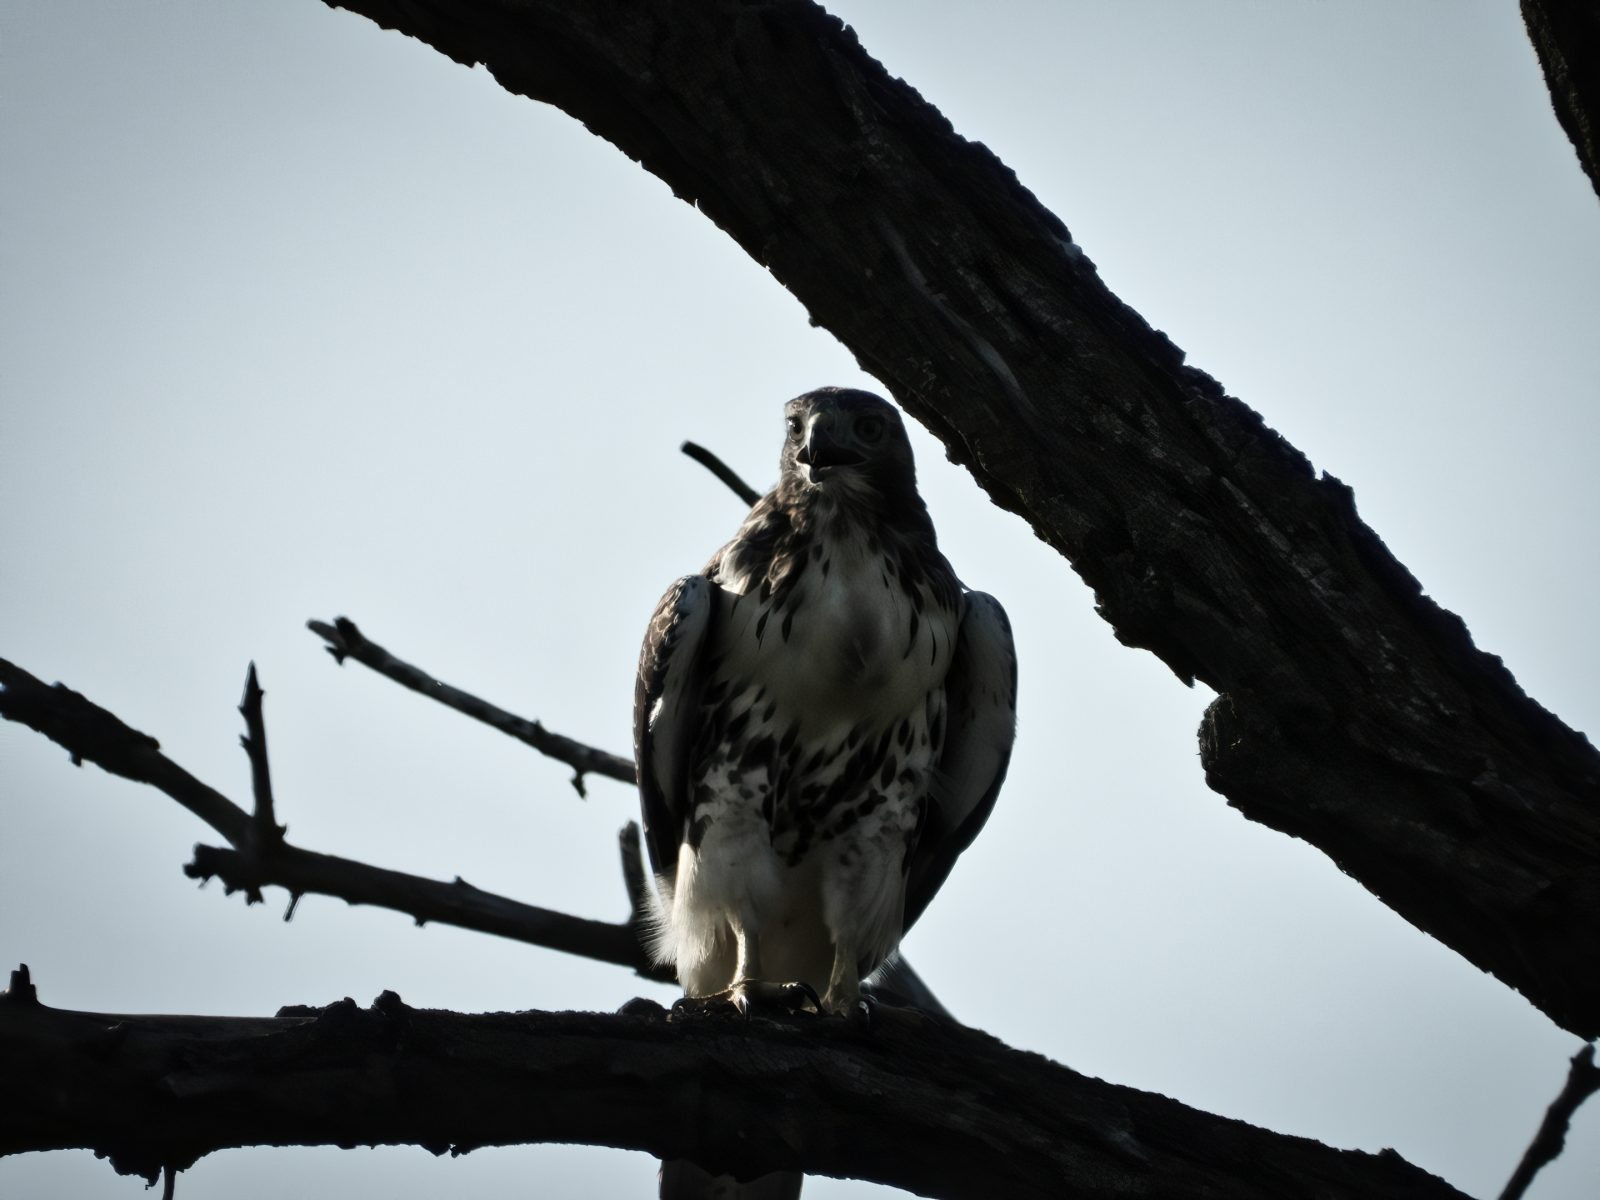 A Red-Tailed Hawk Perched on a Dead Tree Branch Beak Open Calling Out to Mate